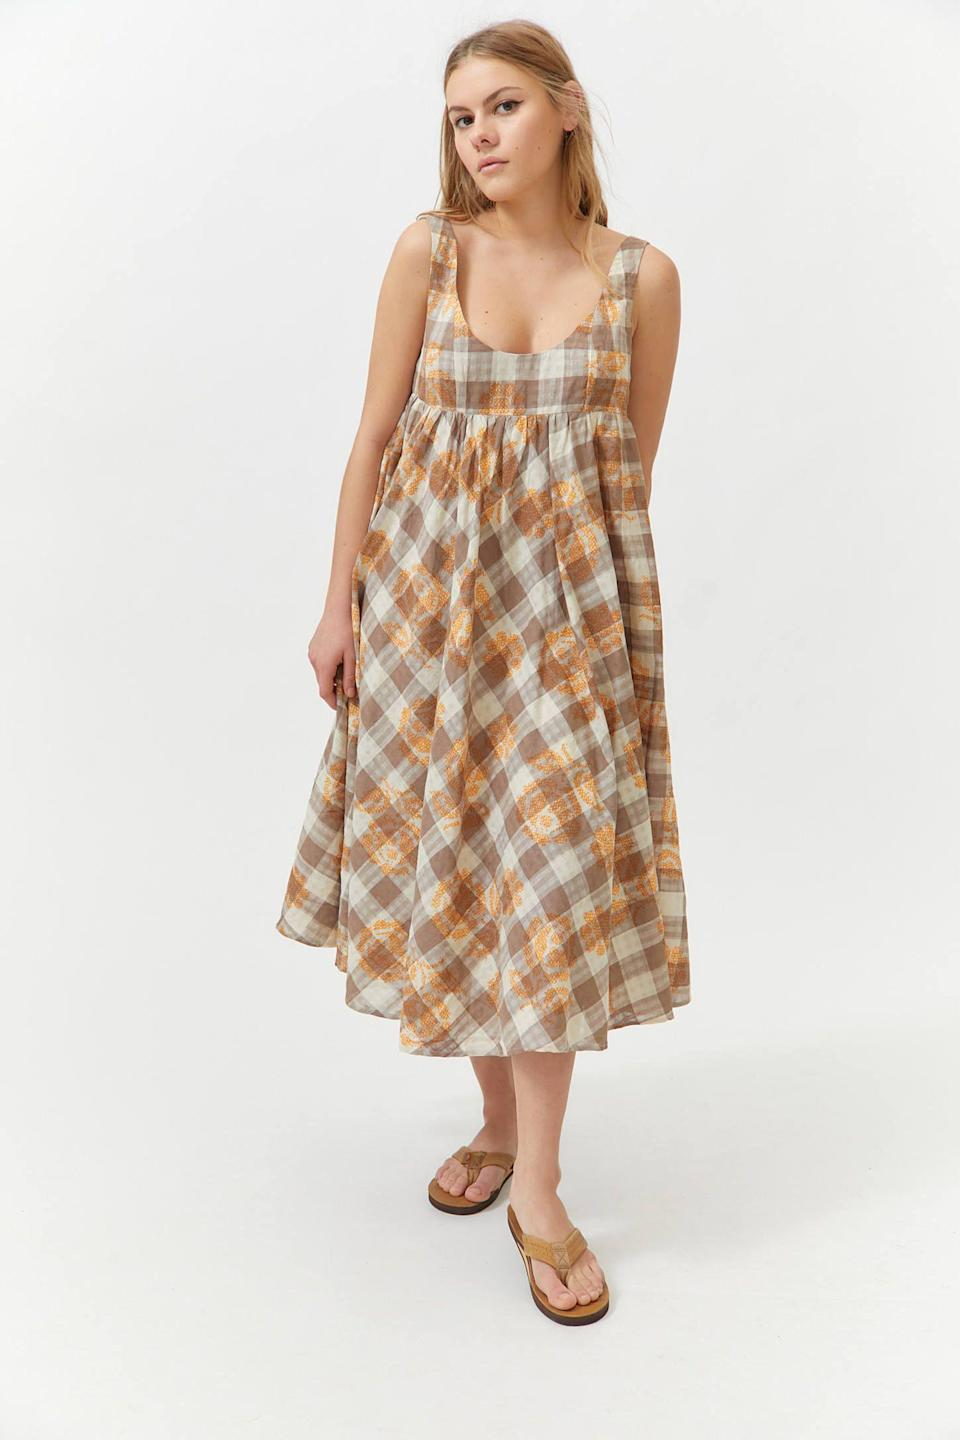 """<p><strong>Urban Outfitters</strong></p><p>urbanoutfitters.com</p><p><strong>$129.00</strong></p><p><a href=""""https://go.redirectingat.com?id=74968X1596630&url=https%3A%2F%2Fwww.urbanoutfitters.com%2Fshop%2Fuo-bianca-embroidered-babydoll-dress&sref=https%3A%2F%2Fwww.thepioneerwoman.com%2Ffashion-style%2Fg36269895%2Fcute-summer-dresses%2F"""" rel=""""nofollow noopener"""" target=""""_blank"""" data-ylk=""""slk:Shop Now"""" class=""""link rapid-noclick-resp"""">Shop Now</a></p><p>This babydoll silhouette is too cute! And the earthy plaid pattern is a nice alternative to some of the brighter summer colors out there. </p>"""